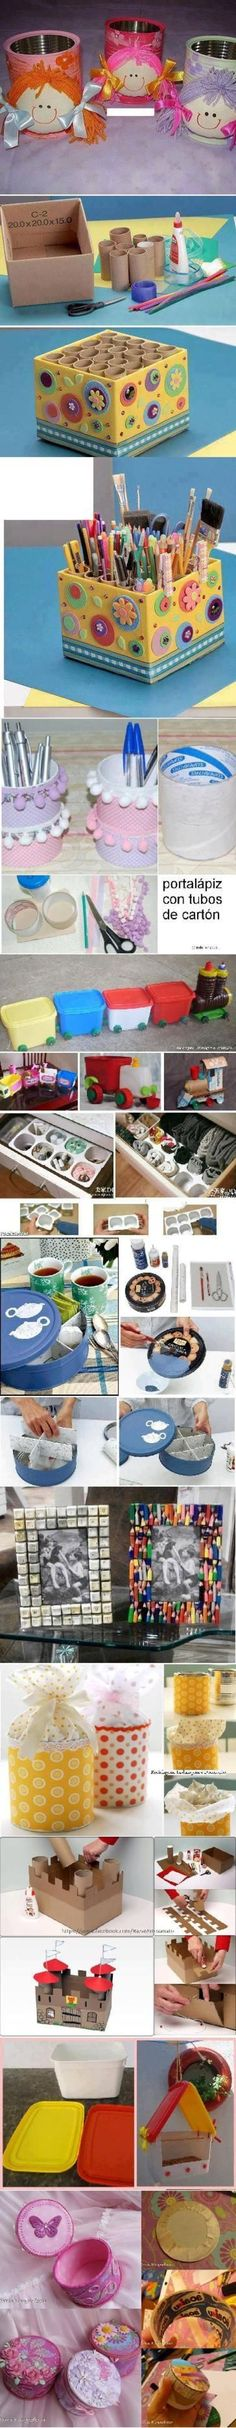 Looking for a fun and easy diy craft project for little or no money? We have the easiest craft ideas for you to try with things that are just sitting around your house. Turn them into a fun craft project with these diy image tutorials. Easy Diy Crafts, Recycled Crafts, Fun Crafts, Arts And Crafts, Paper Crafts, Recycled Materials, Diy Paper, Projects For Kids, Diy For Kids